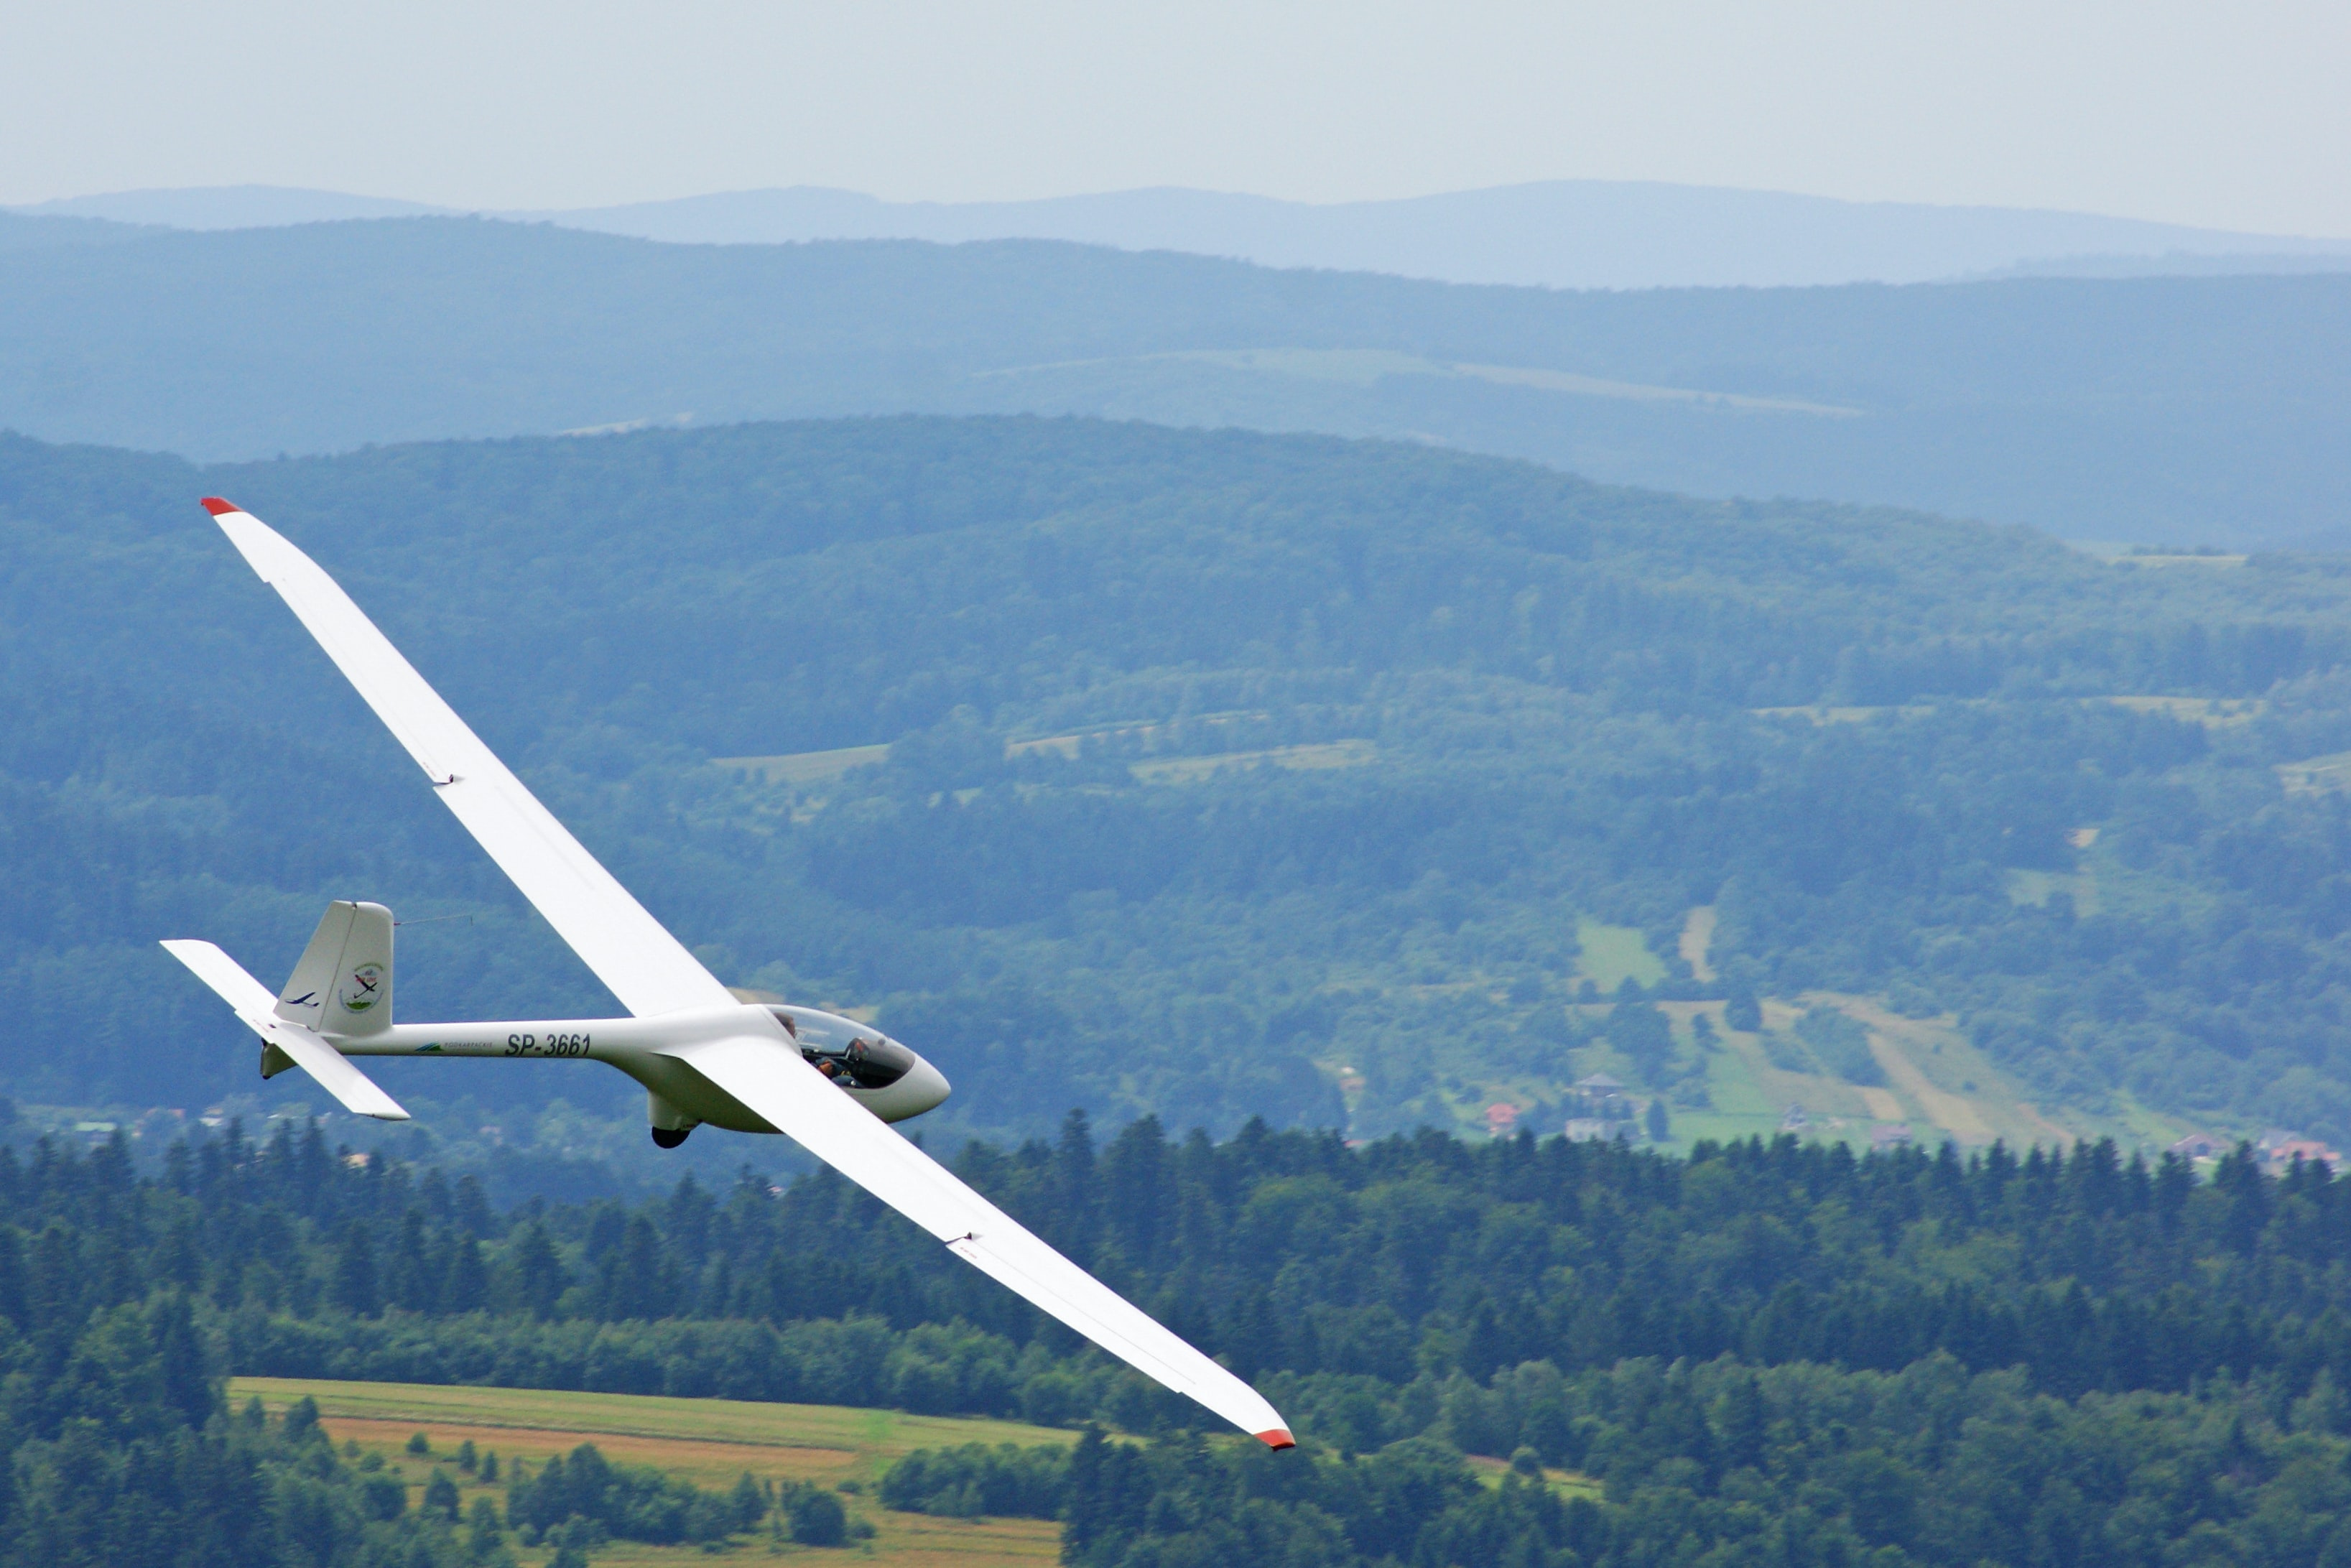 A white glider in flight over forested hills